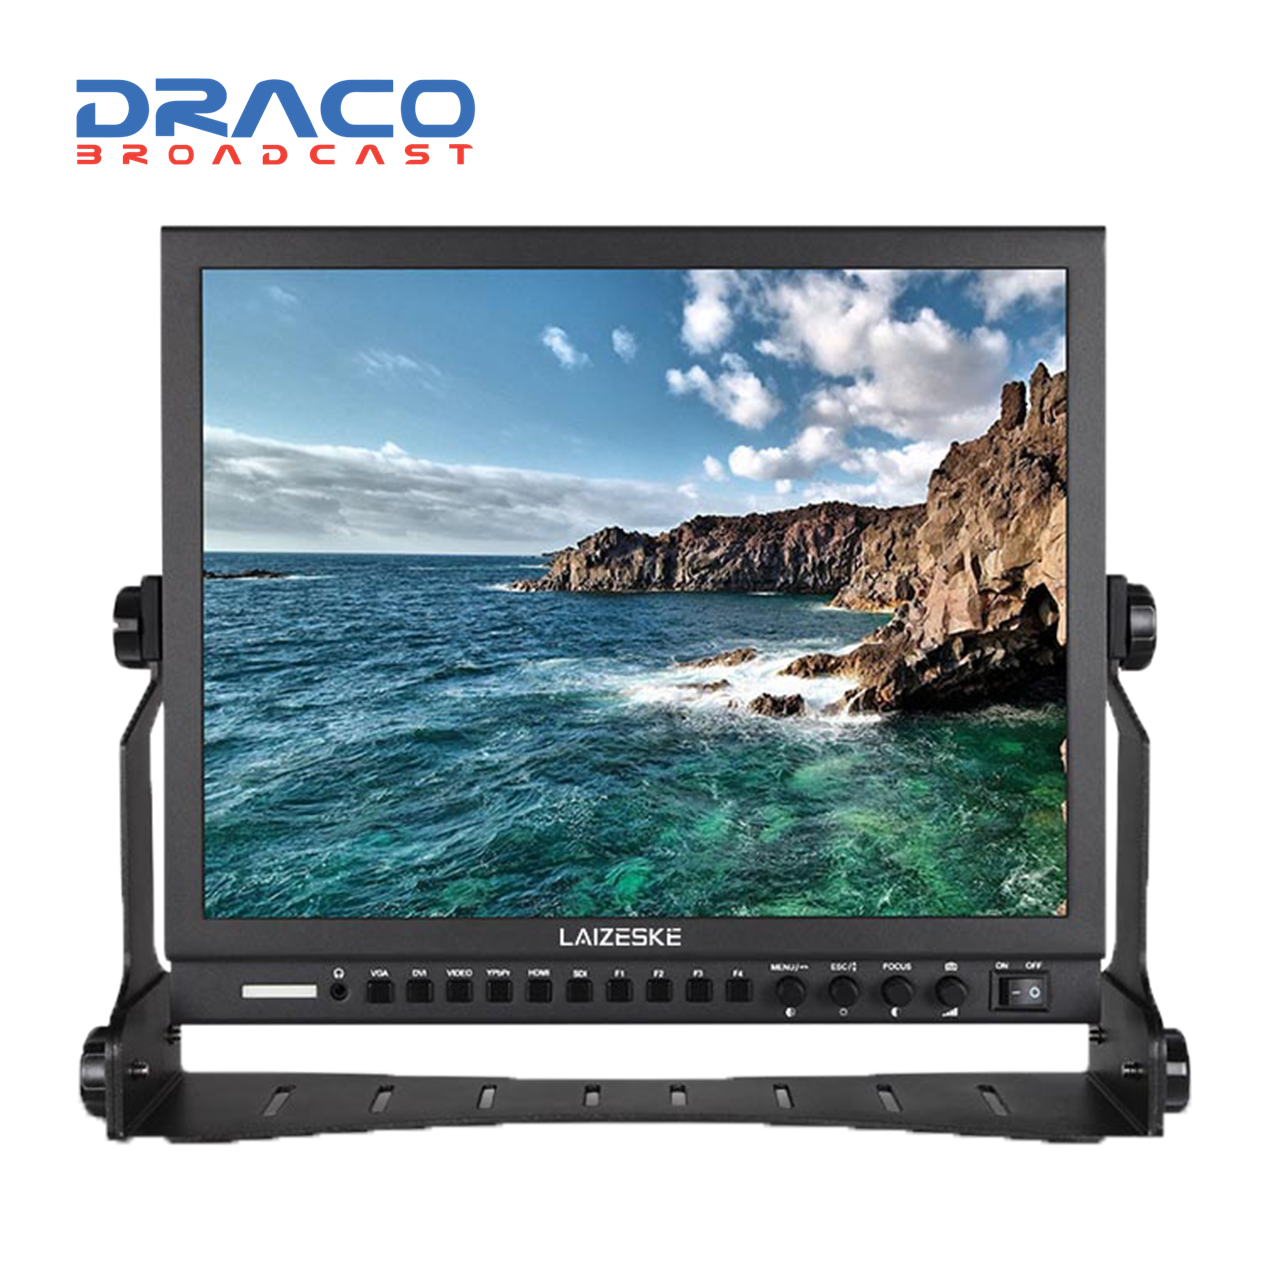 Laizeske DR150H 15″ LCD Production Monitor